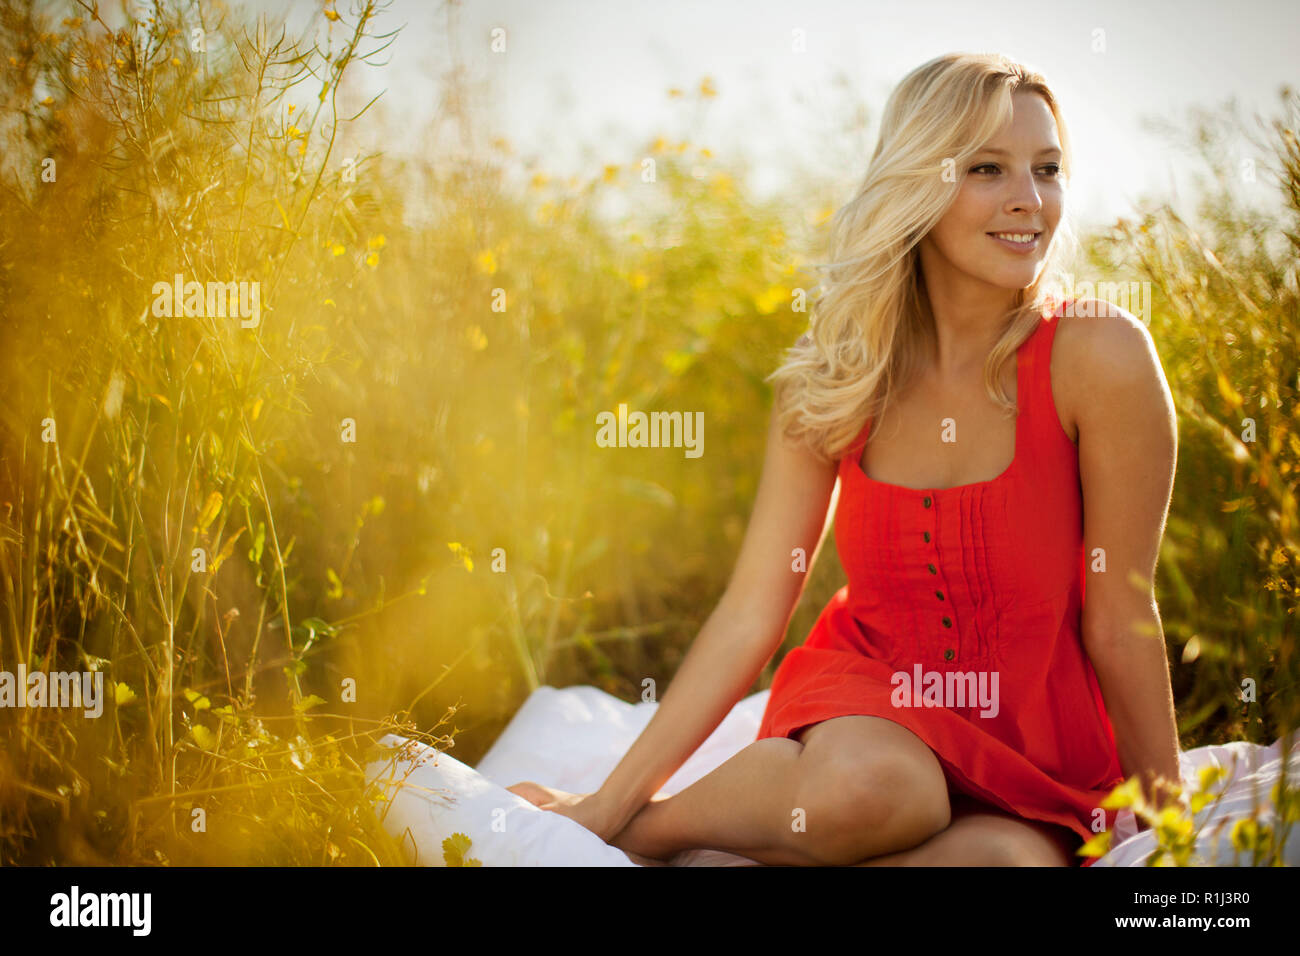 Smiling young woman sitting in a grassy meadow. Stock Photo